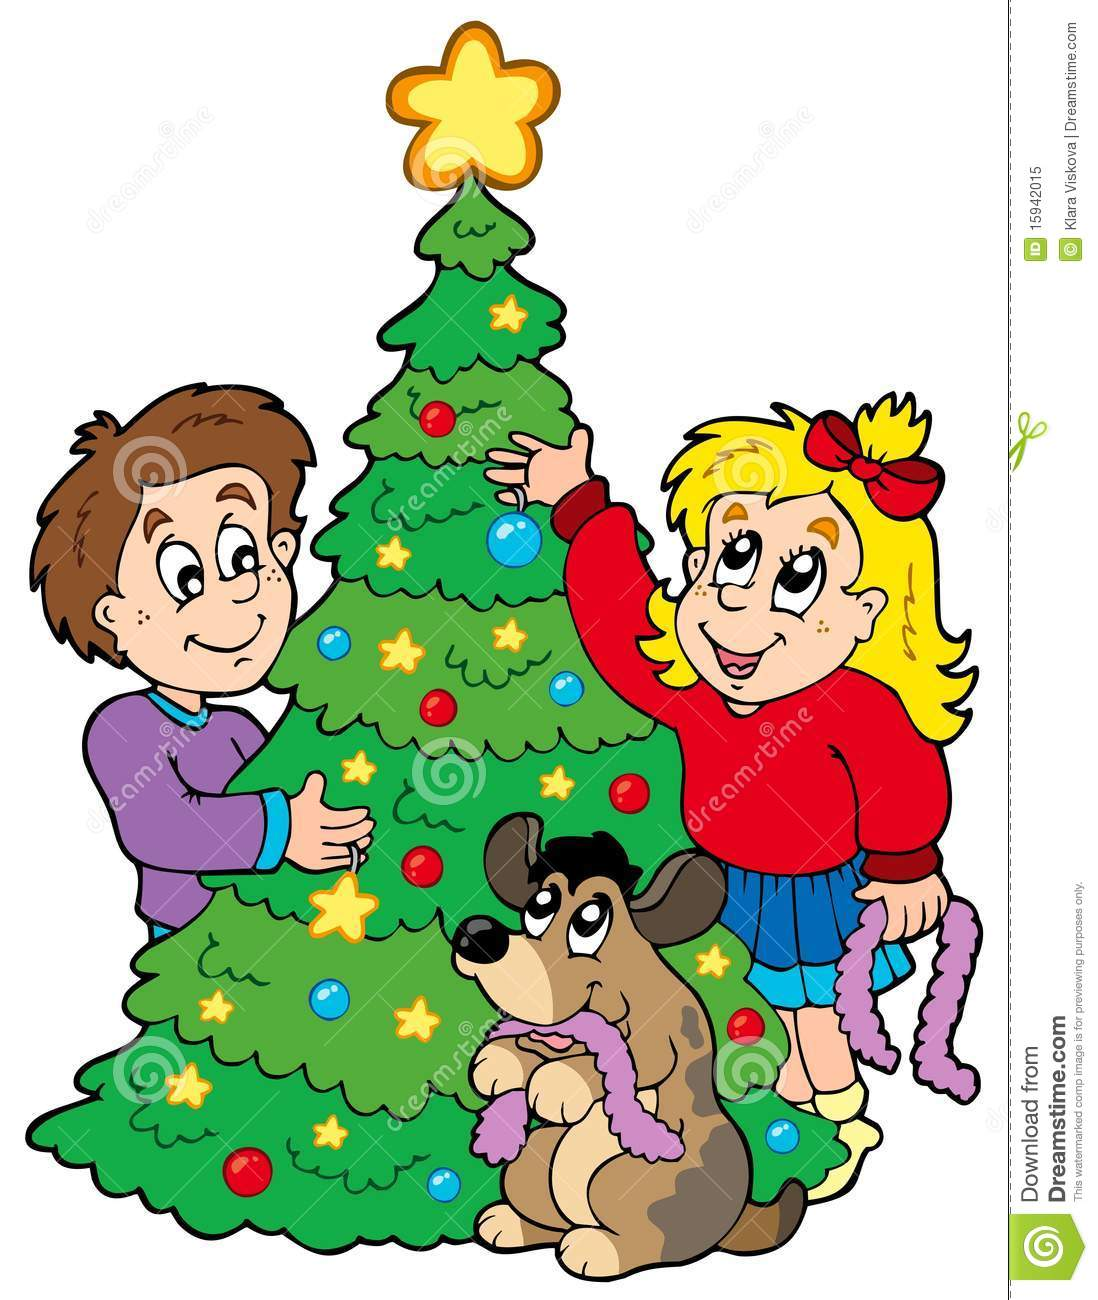 Two Kids Decorating Christmas Tree Stock Vector - Illustration of ...